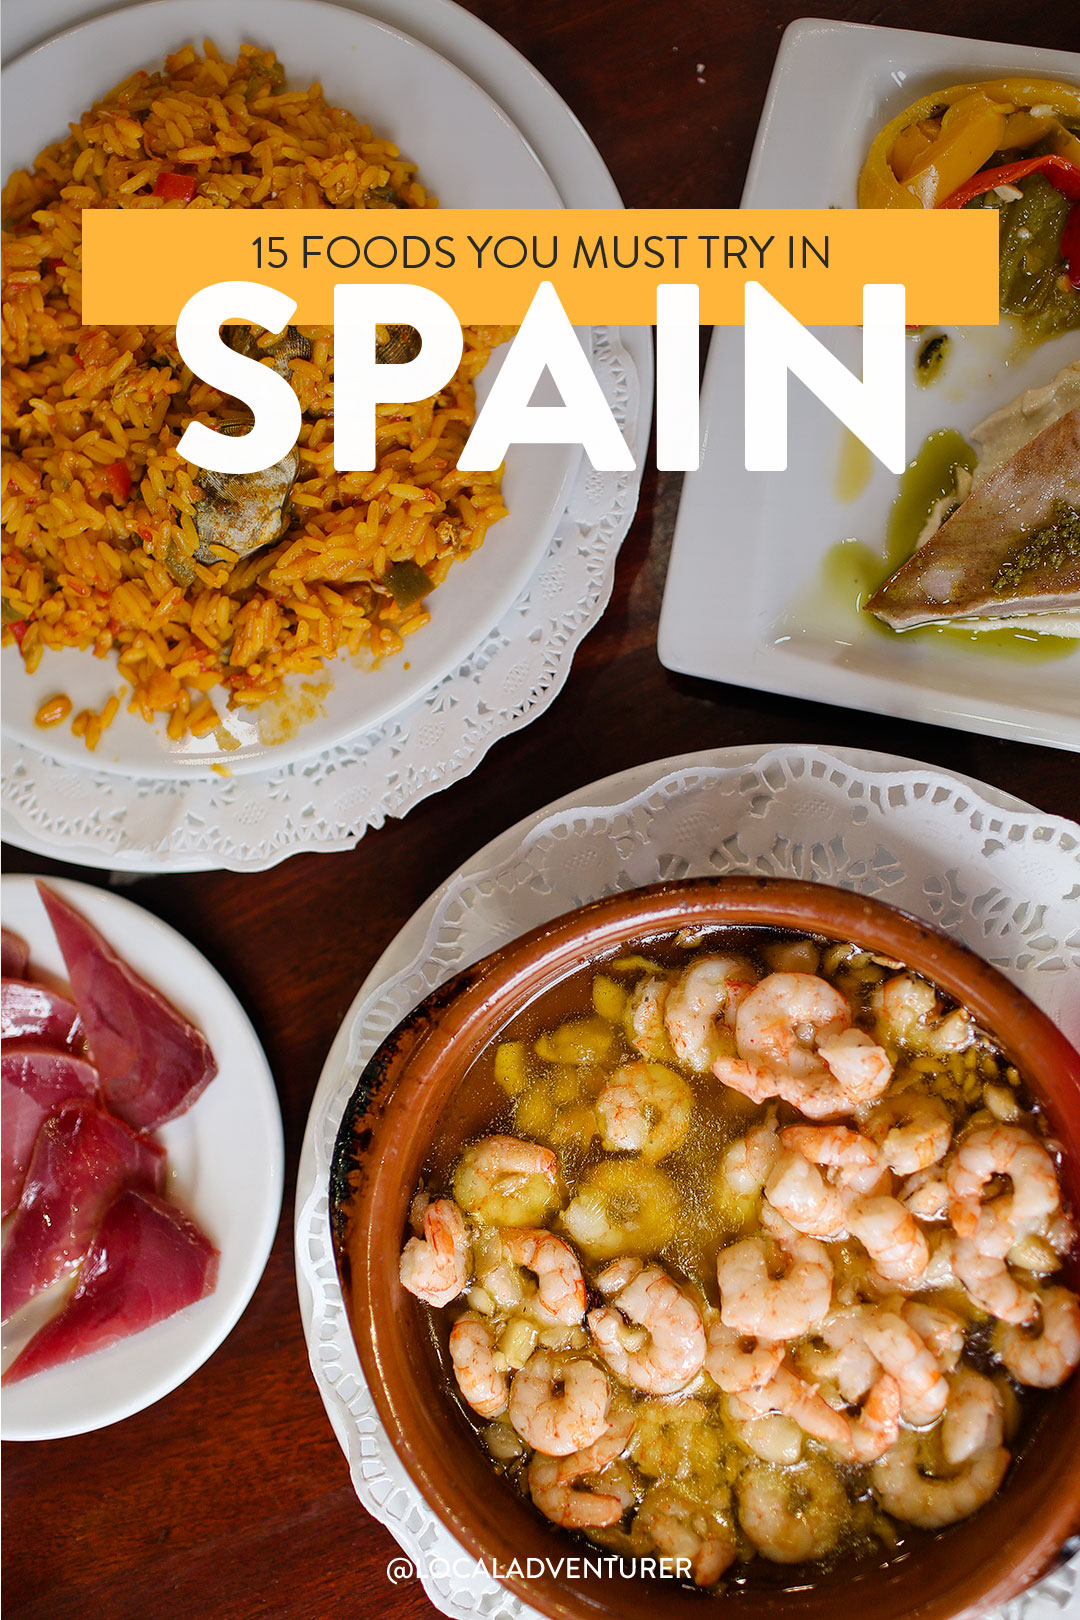 Spanish Food List - 15 Foods You Must Try in Spain